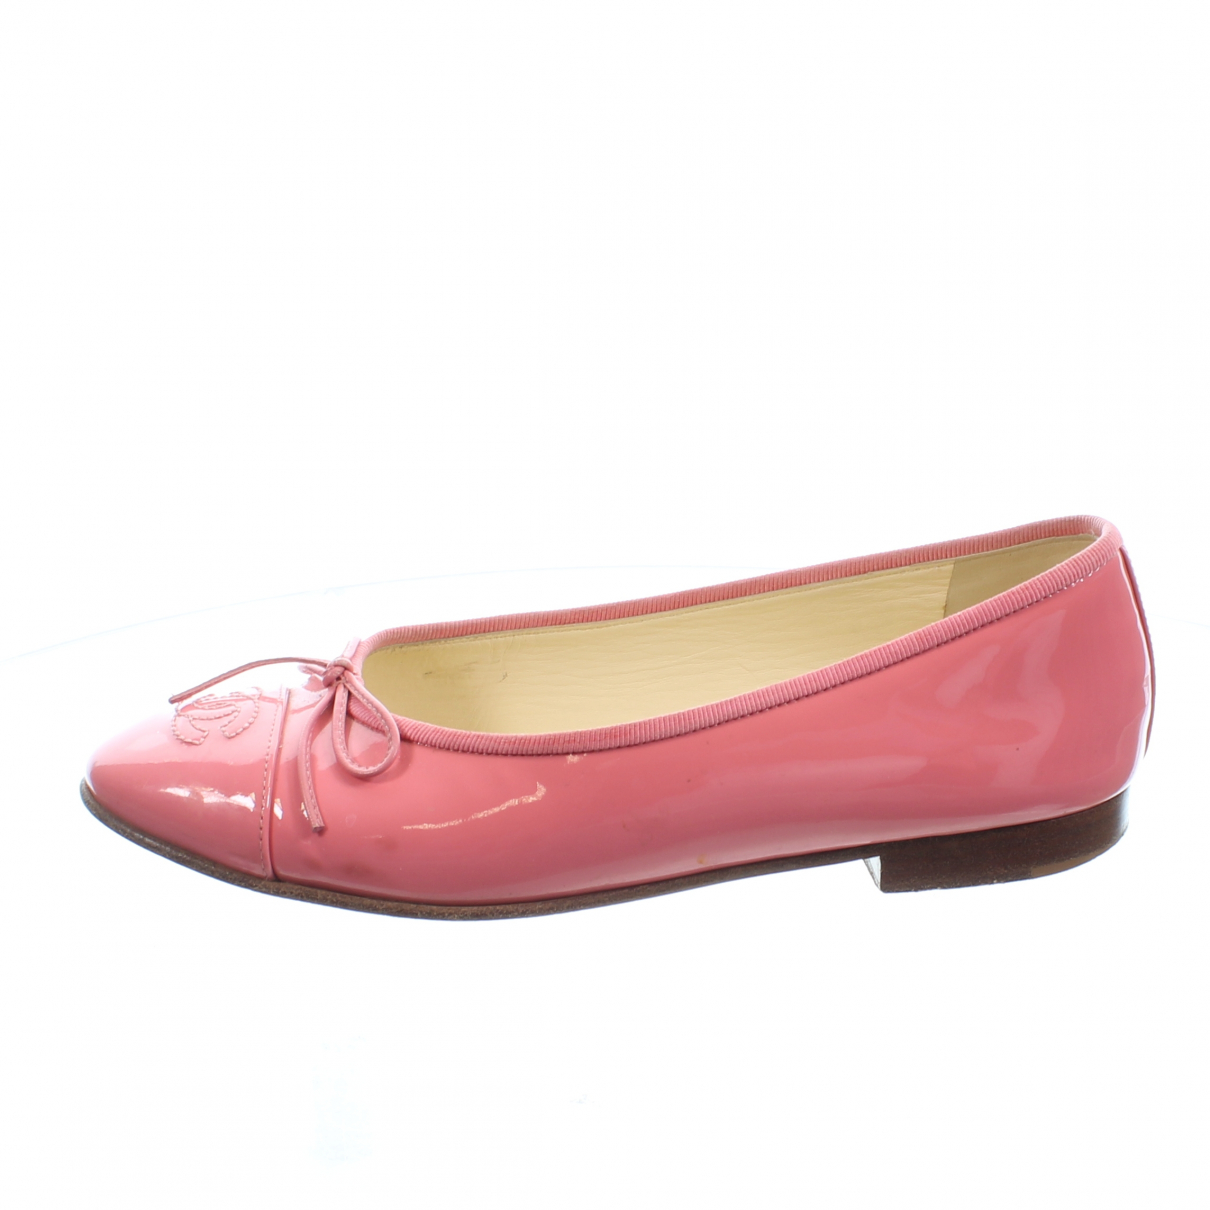 Chanel \N Pink Patent leather Ballet flats for Women 36.5 EU